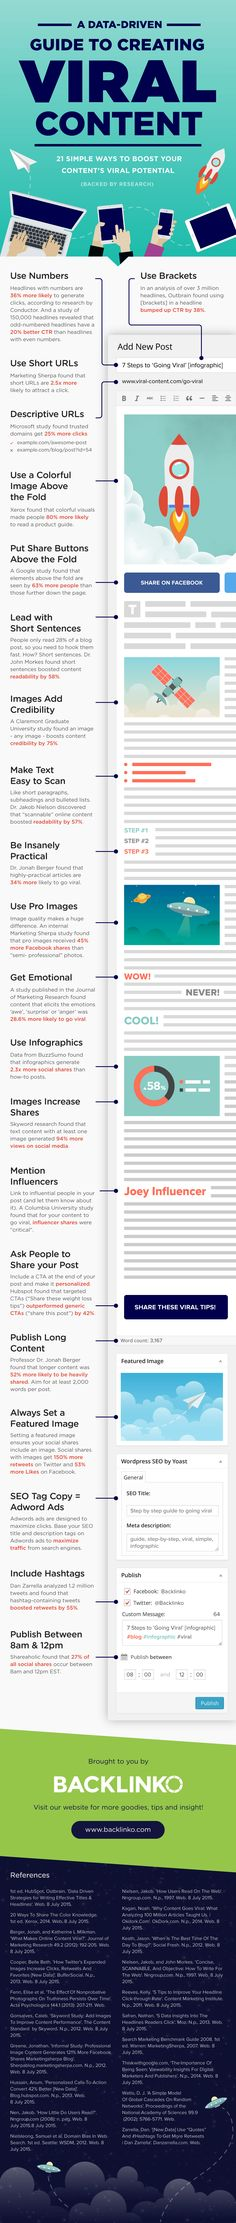 21 Data-Driver Tips On How To Create Viral Content - This informative infographic will give you data-driven tips on how to create viral content that will increase the traffic to your blog. - #infographic